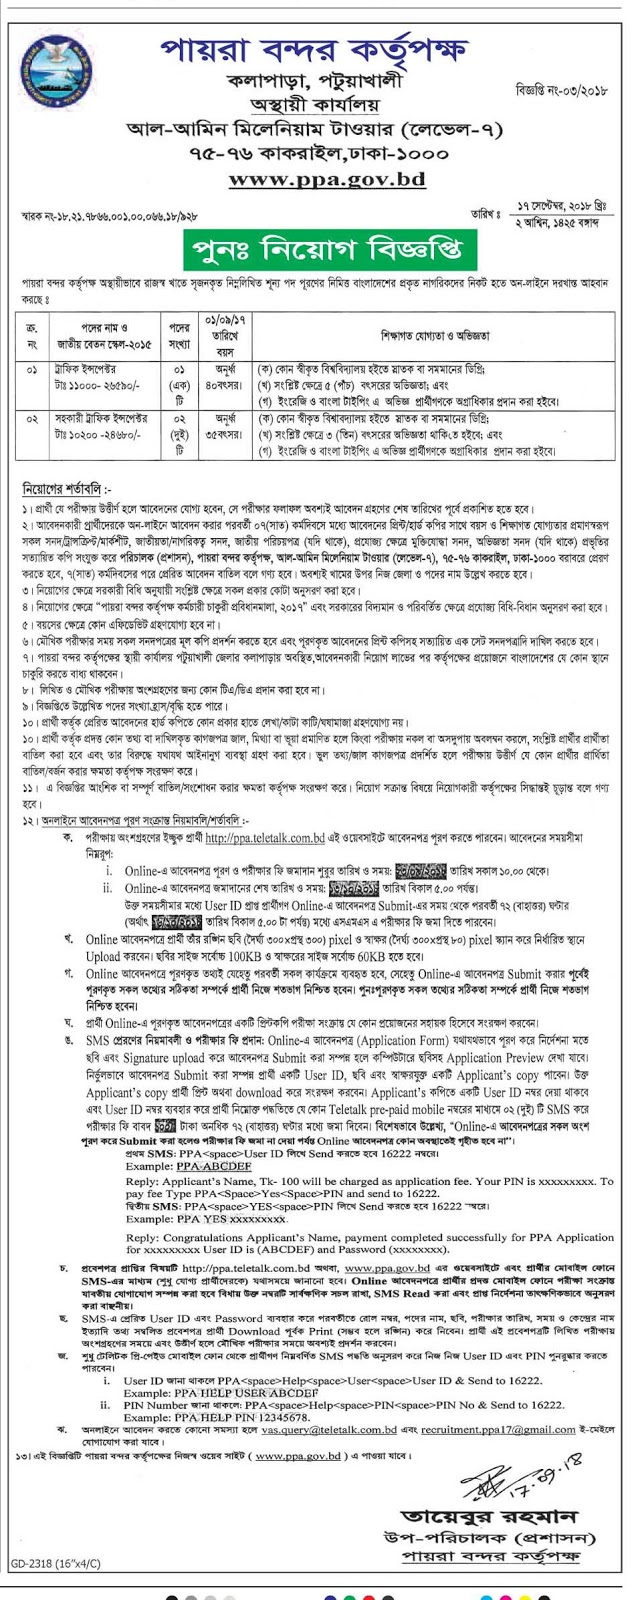 Payra Port Authority (PPA) Job circular 2018